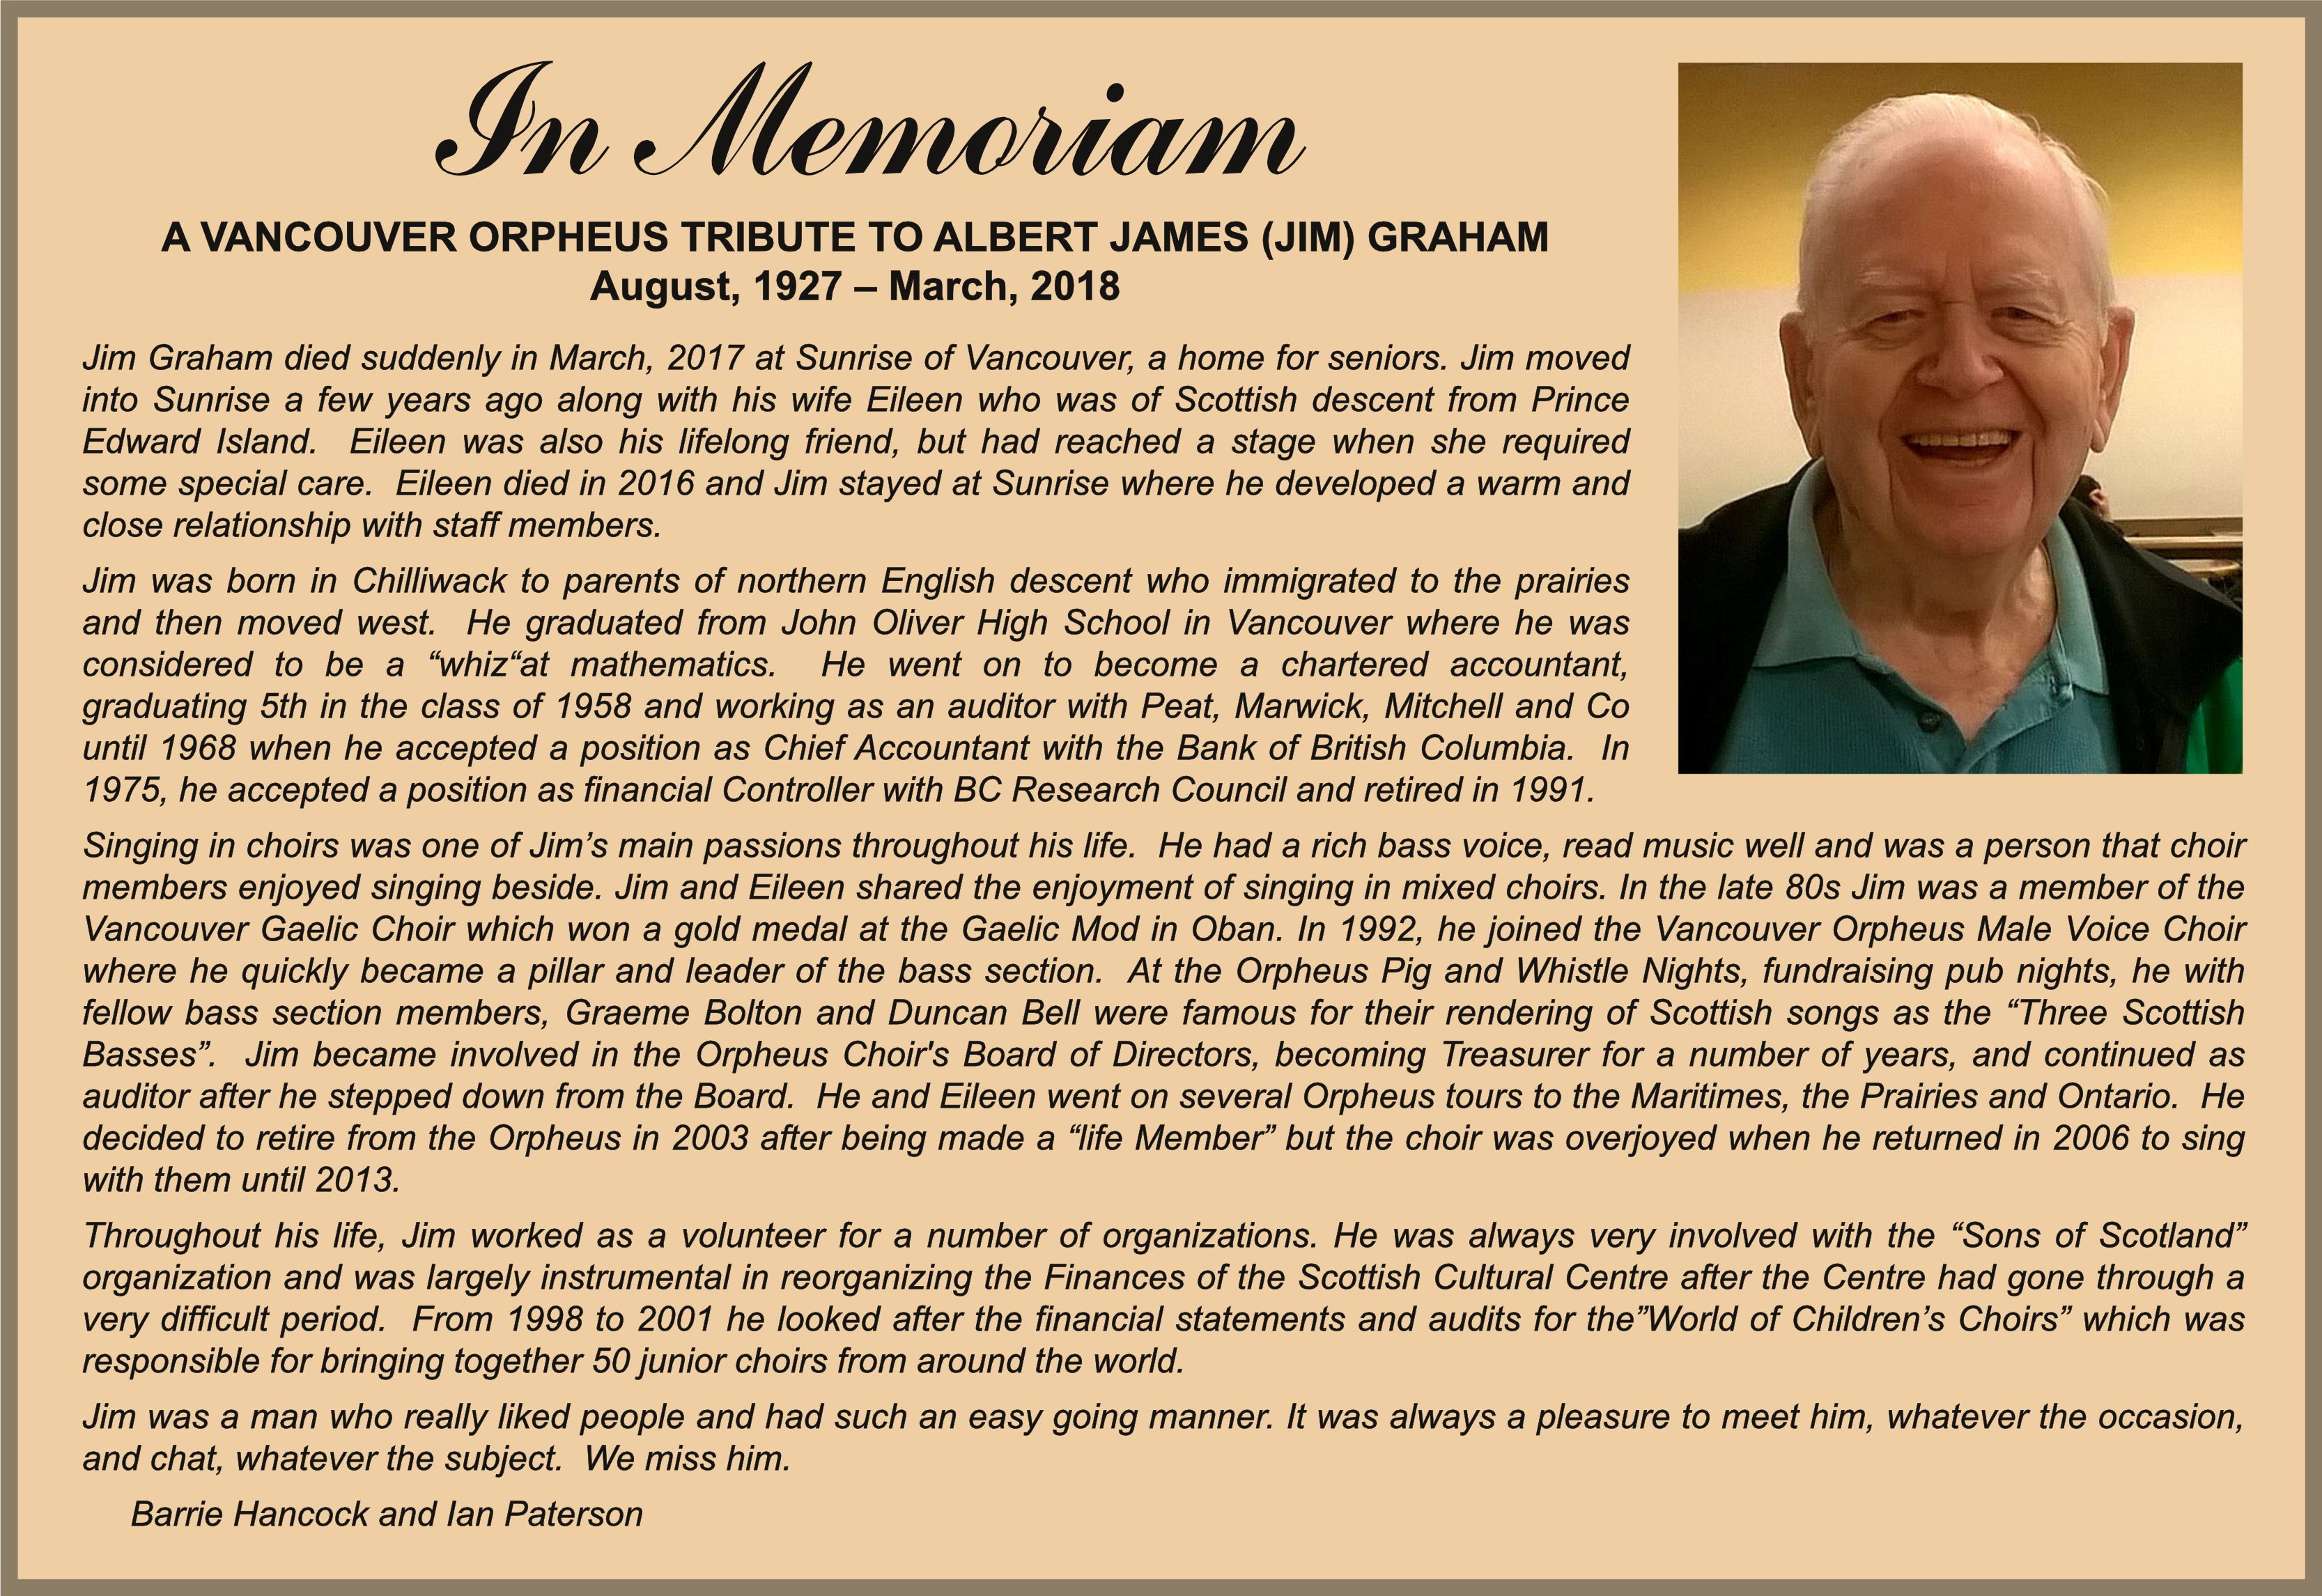 In Memoriam for Jim Graham